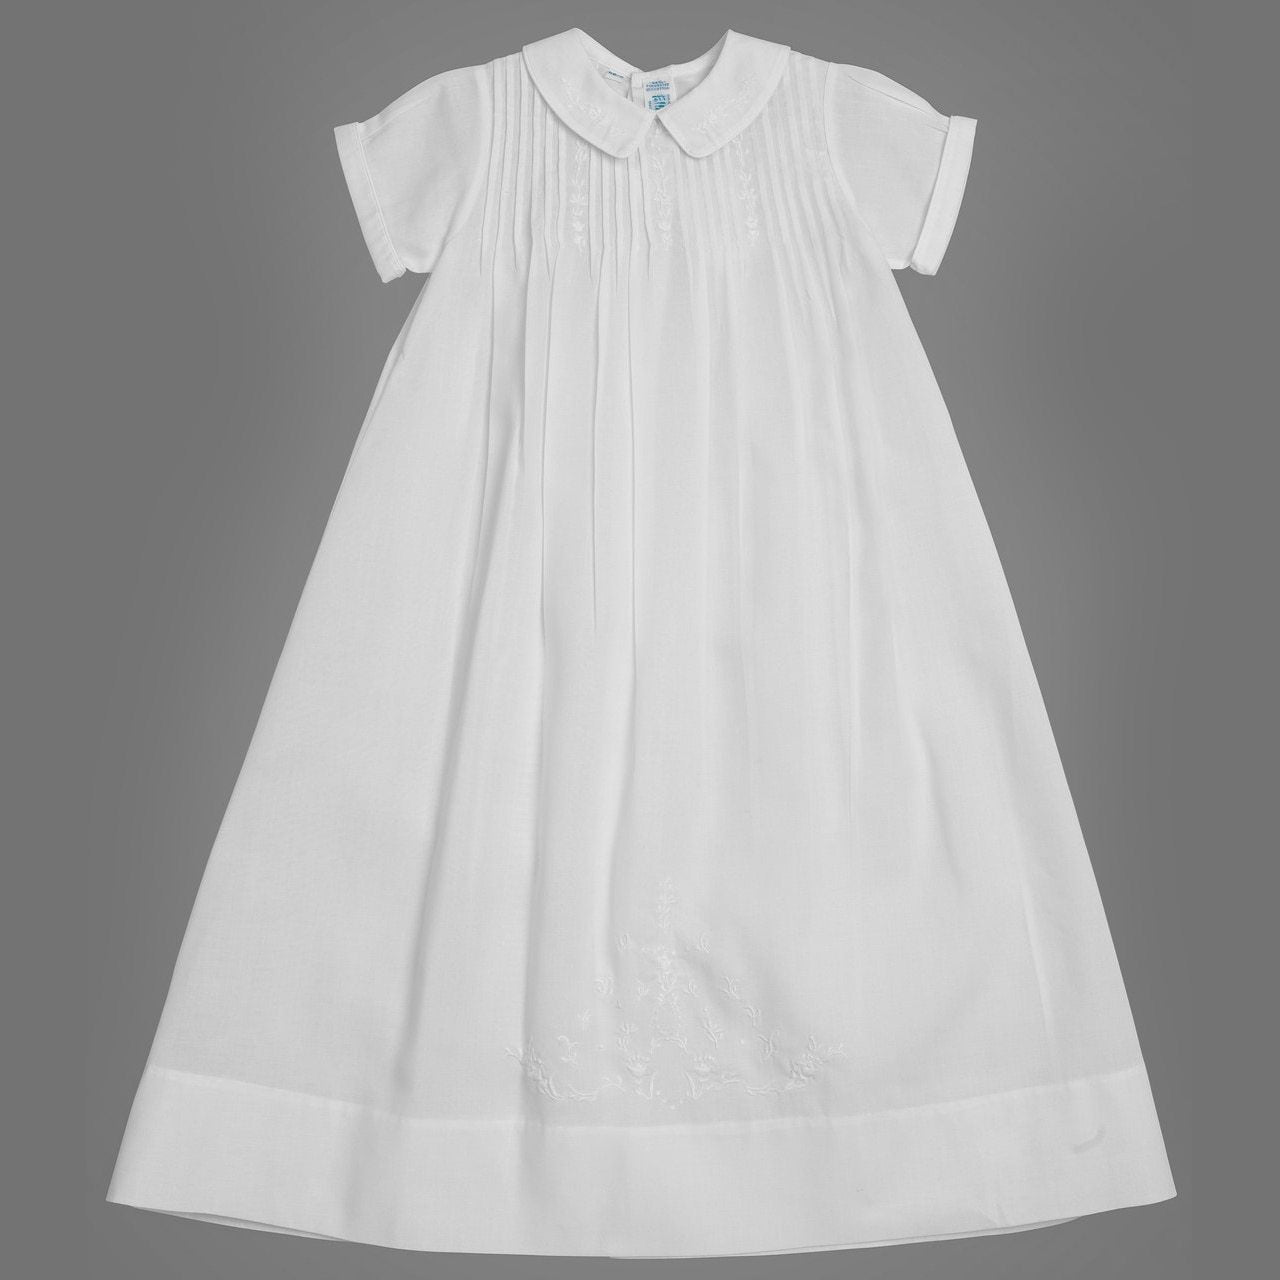 Boys Embroidered Collar Special Occasion Gown Set